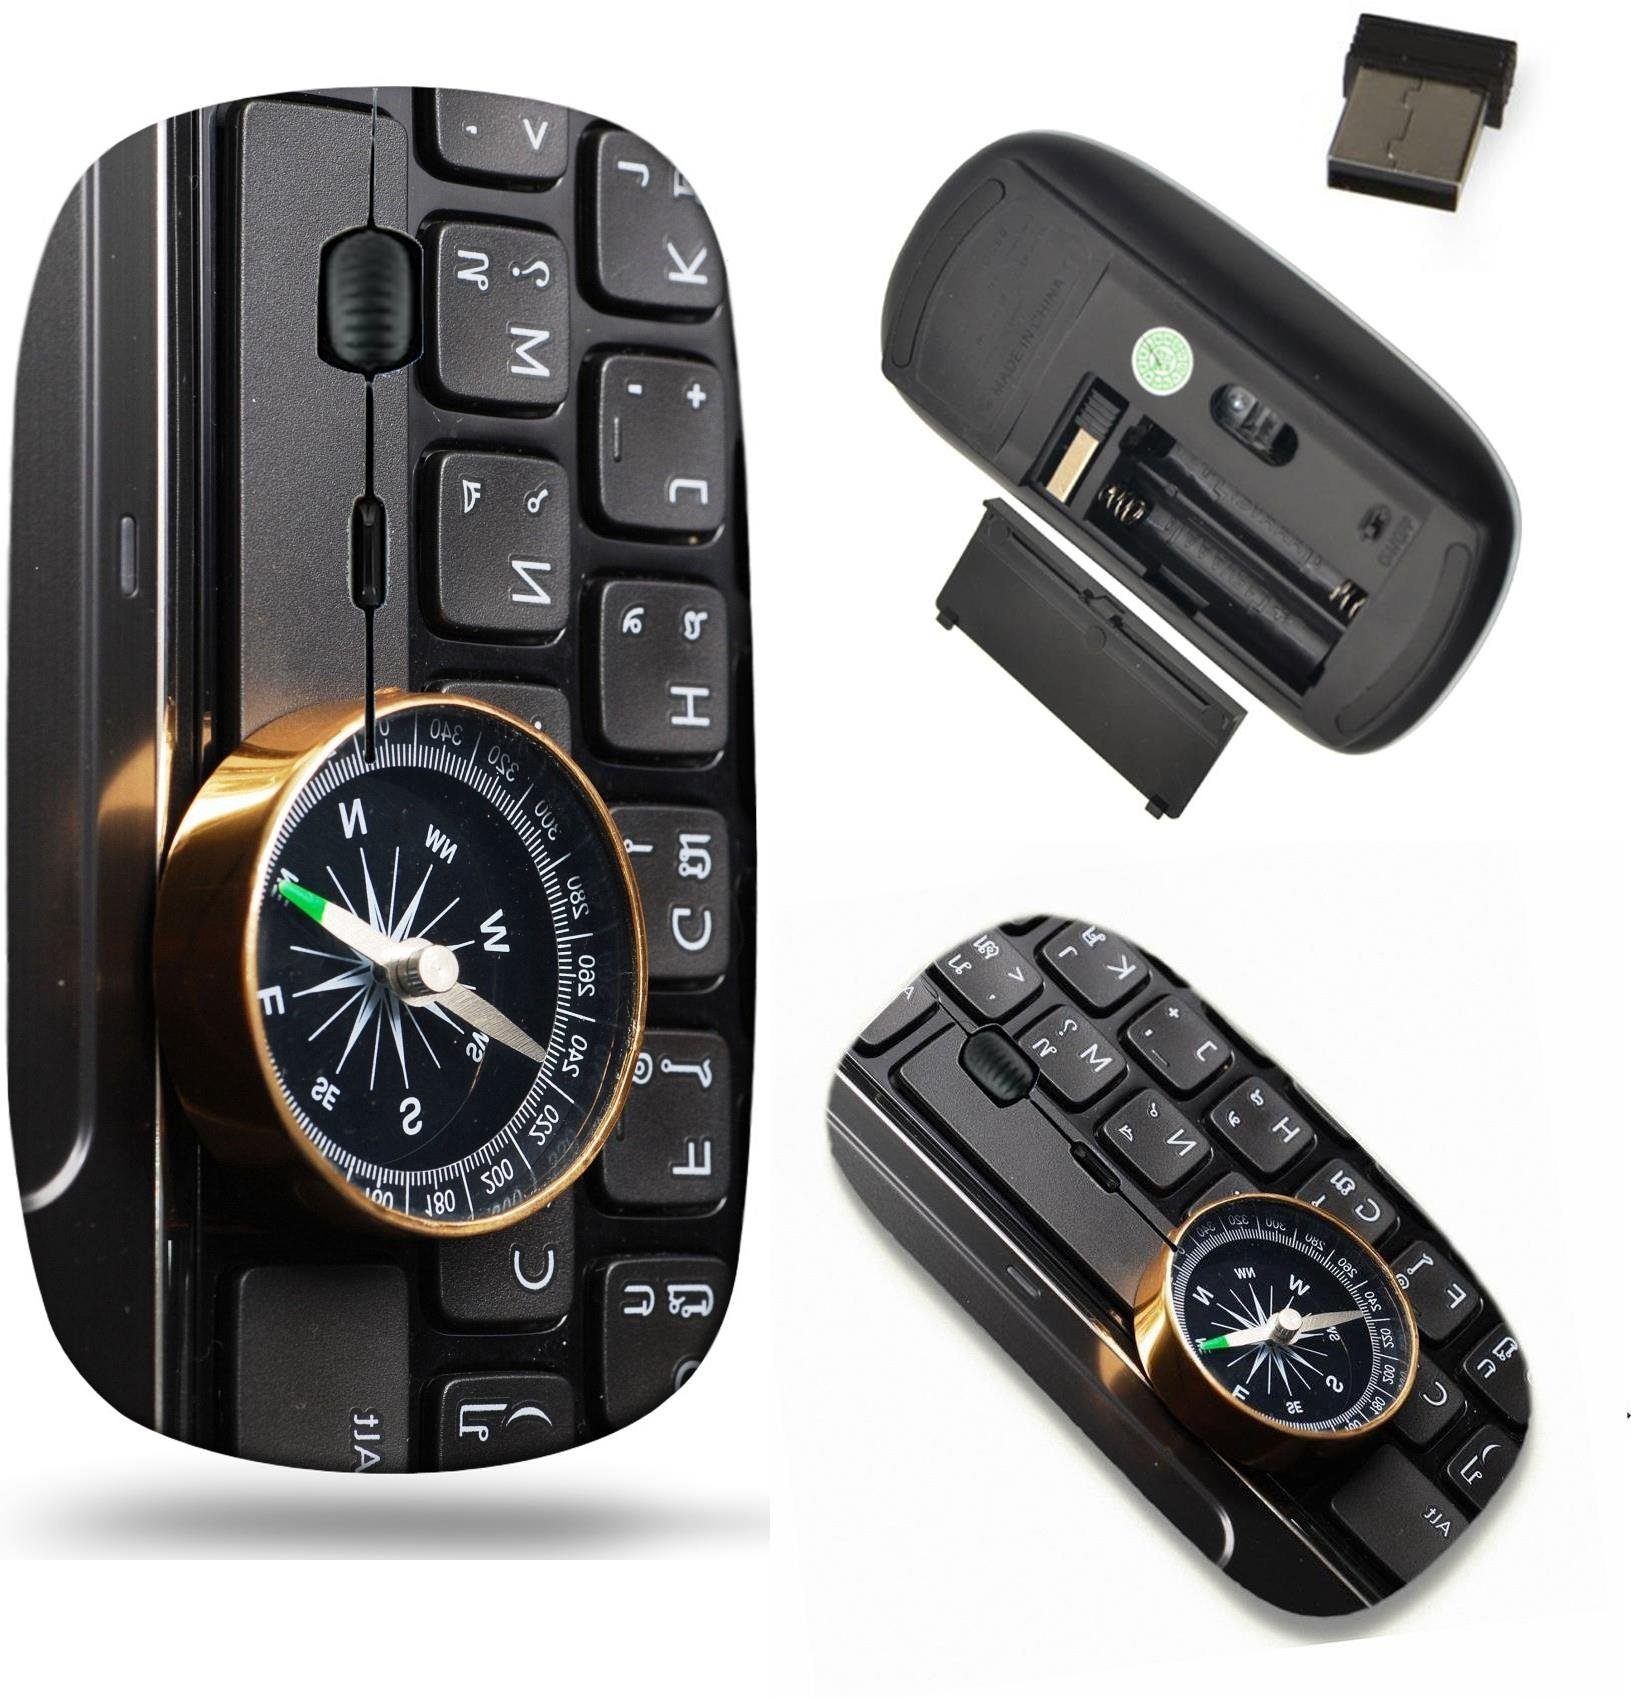 Liili Wireless Mouse Travel 2.4G Wireless Mice with USB Receiver, Click with 1000 DPI for notebook, pc, laptop, computer, mac book compass on computer keyboard business decision I